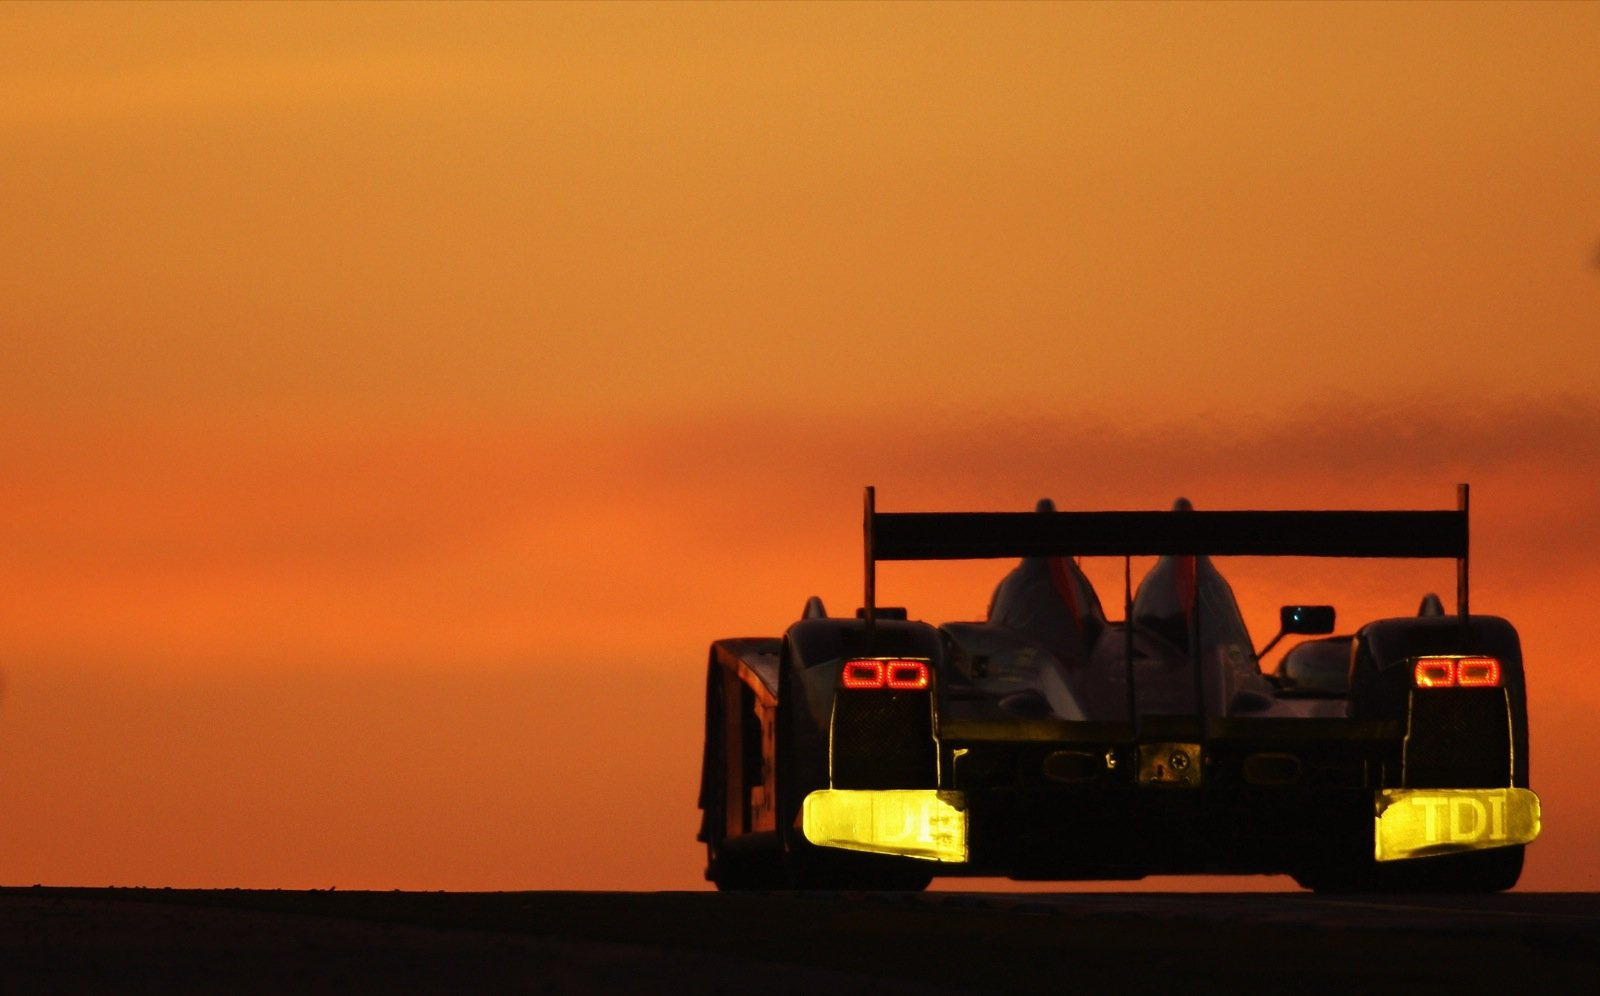 48] Le Mans Wallpaper on WallpaperSafari 1600x996